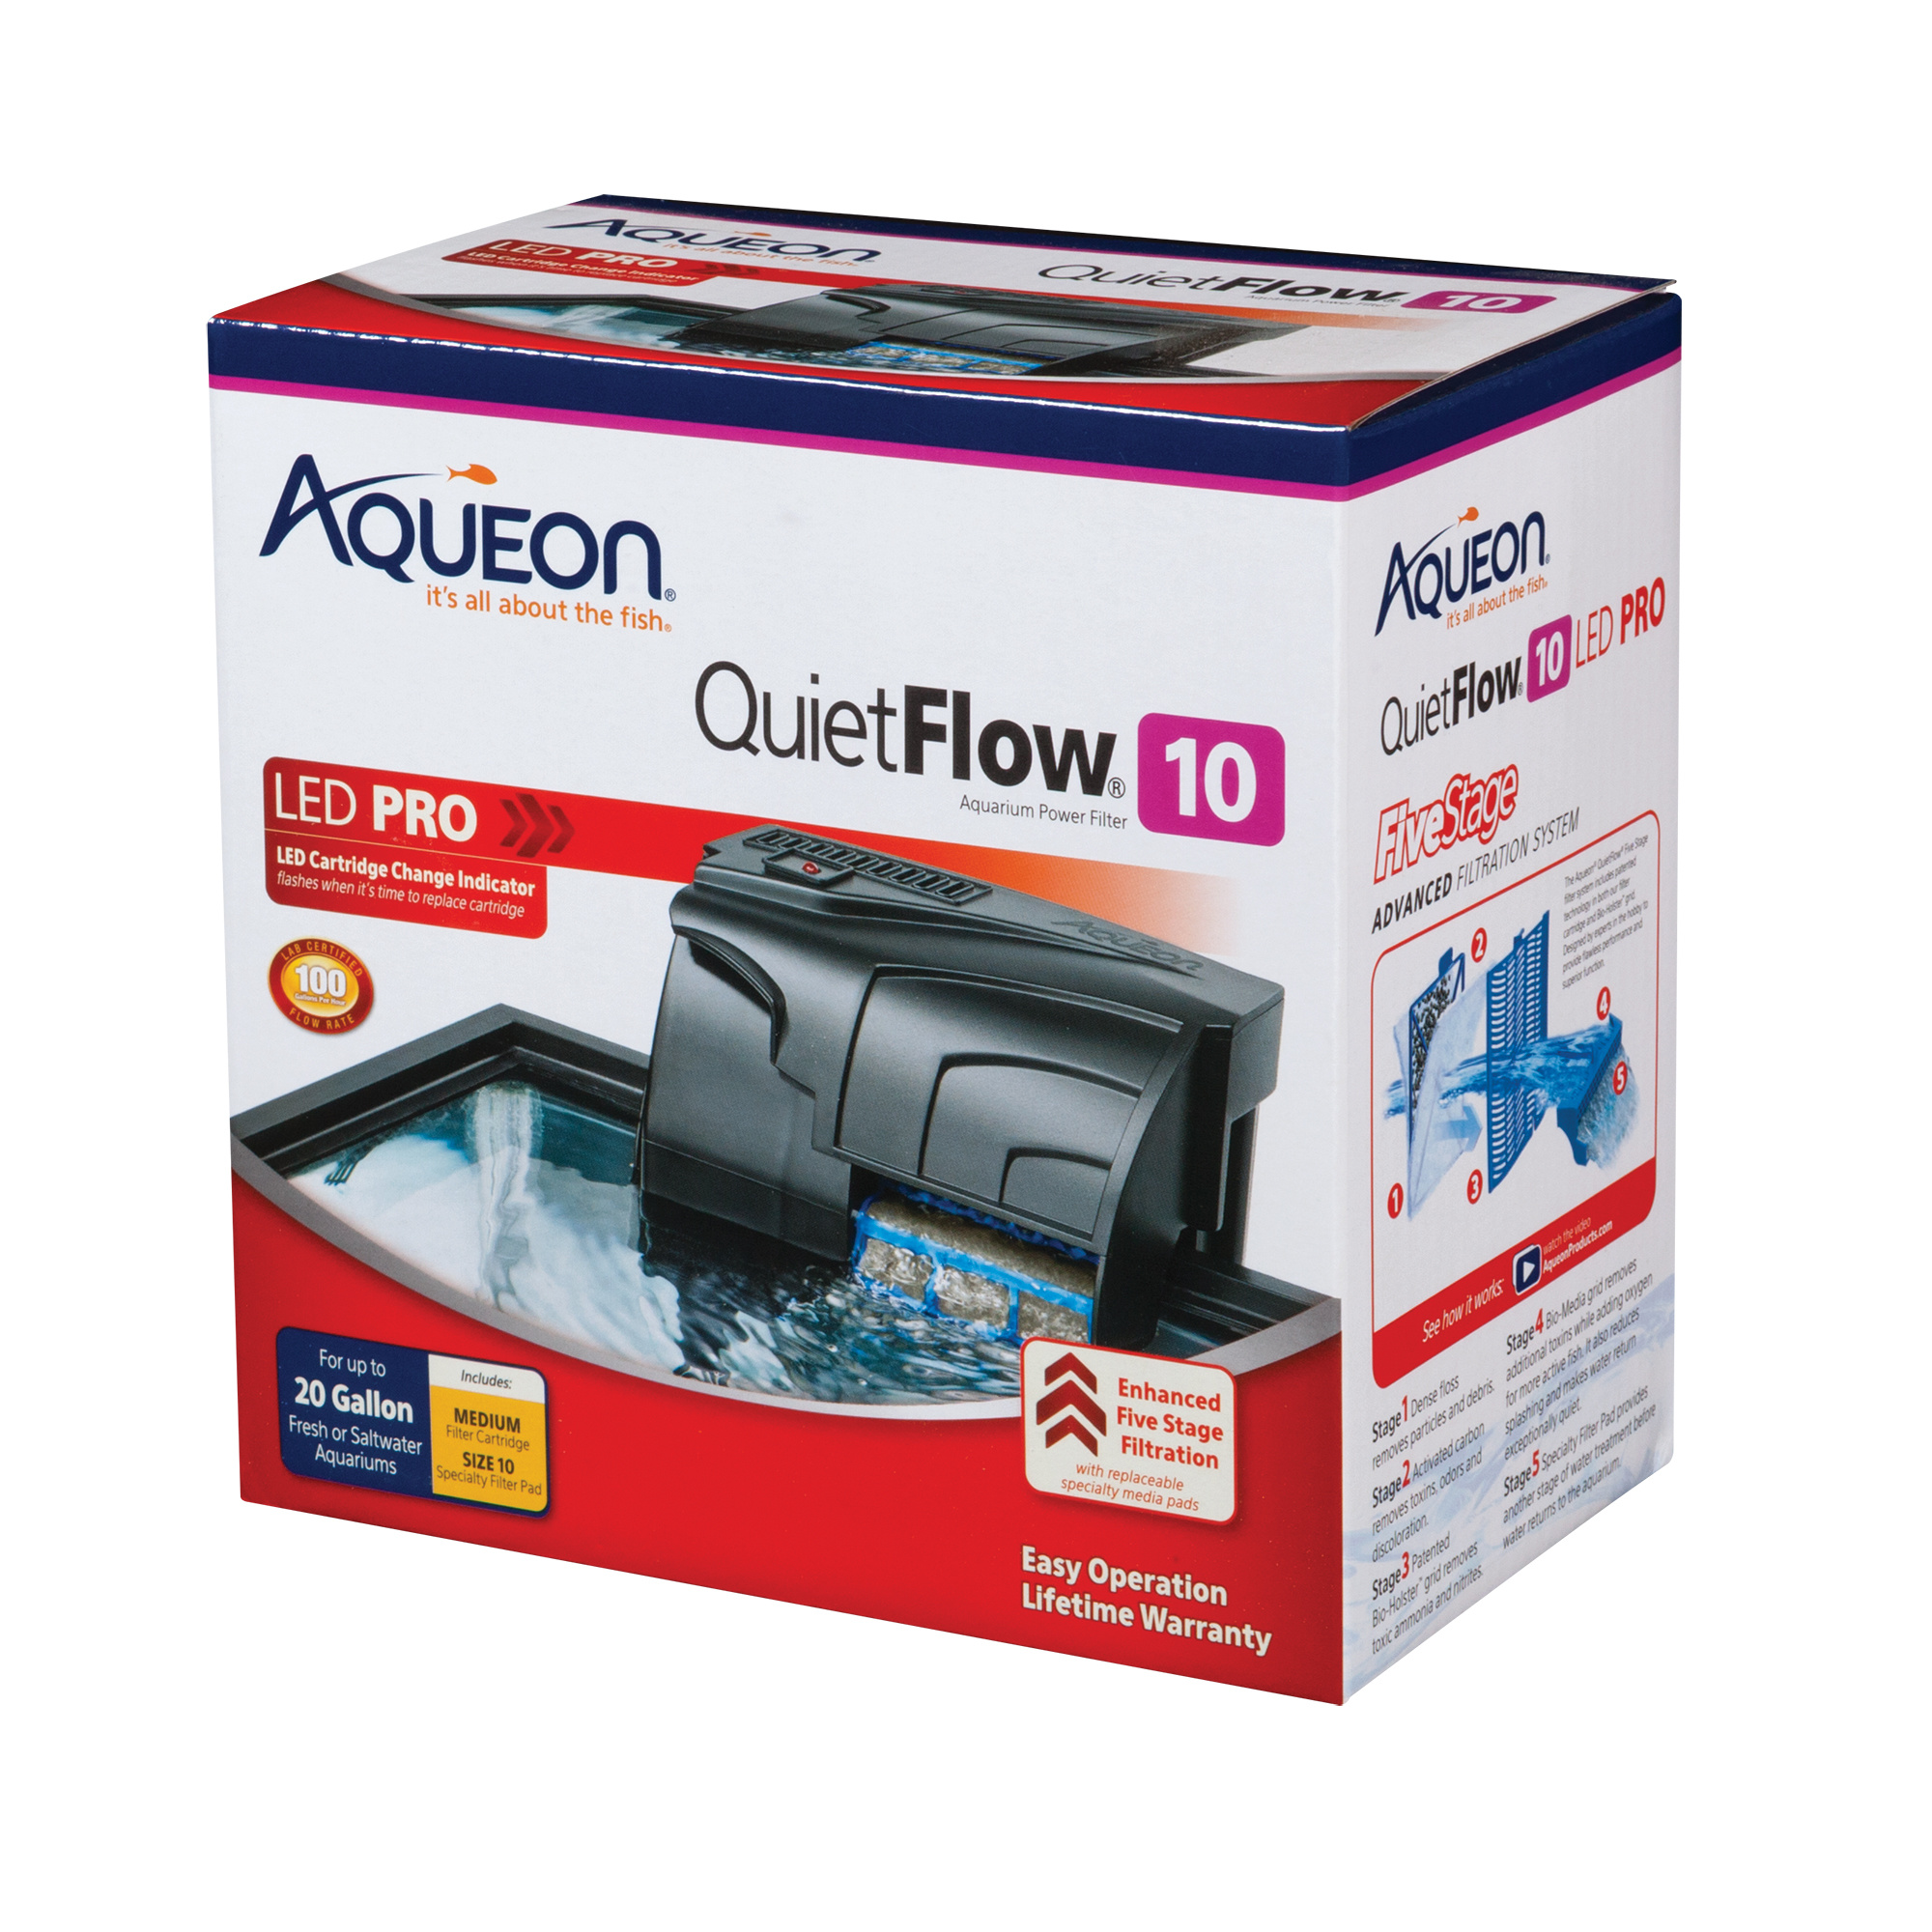 Aqueon Aqueon QuietFlow 10 Power Filter 20gal